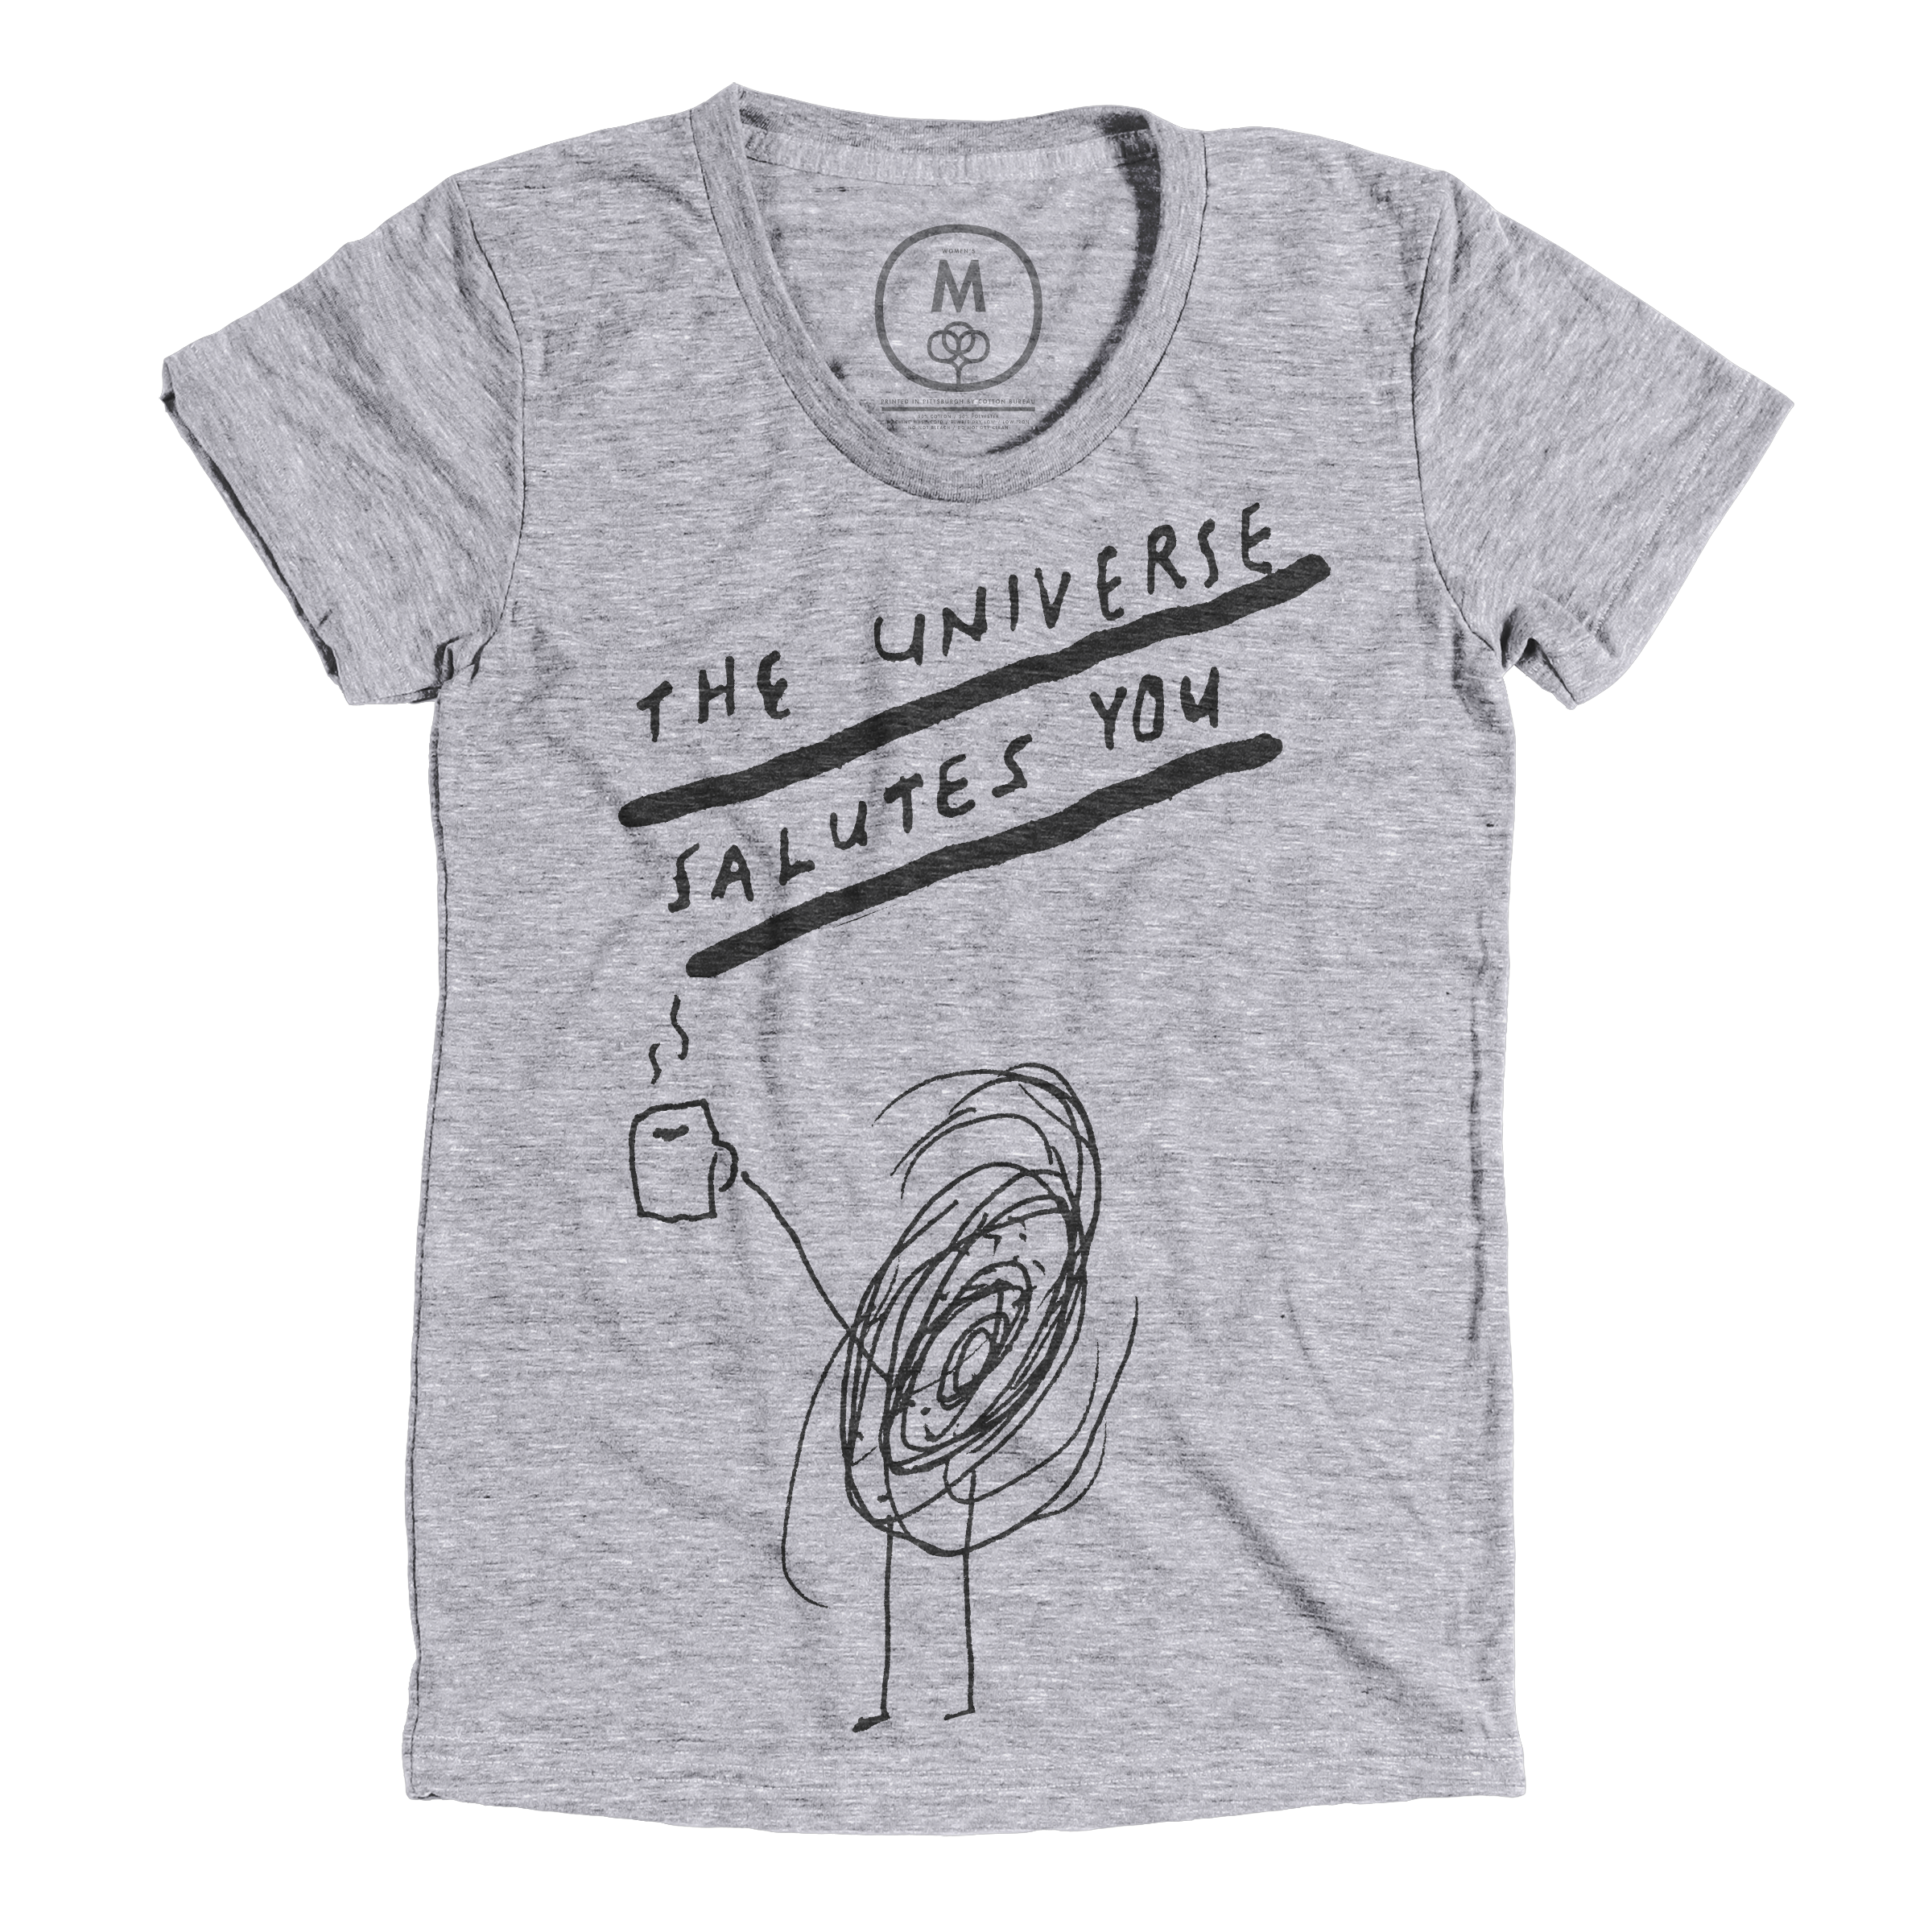 The Universe Salutes You Premium Heather (Women's)